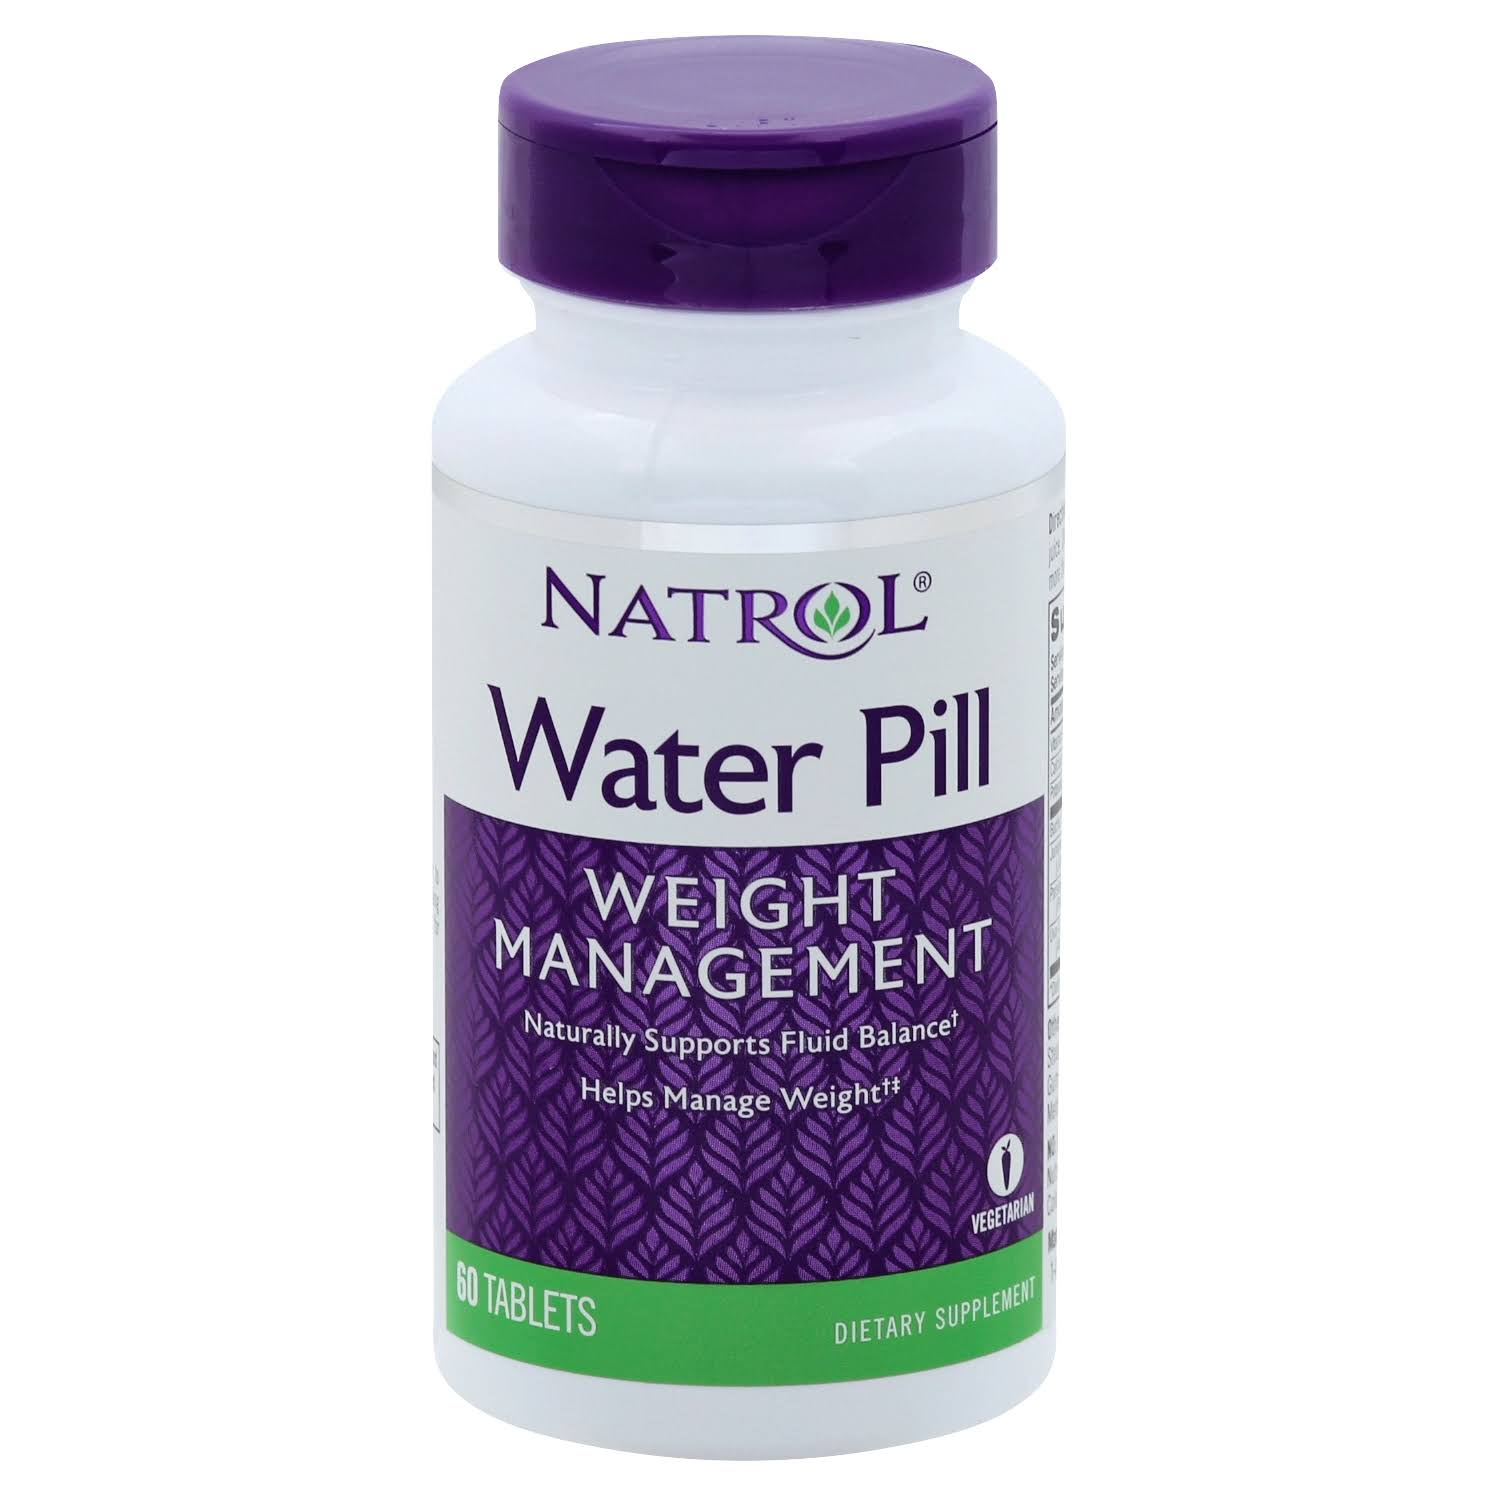 Natrol Water Pill Supplement - 60 Tablets